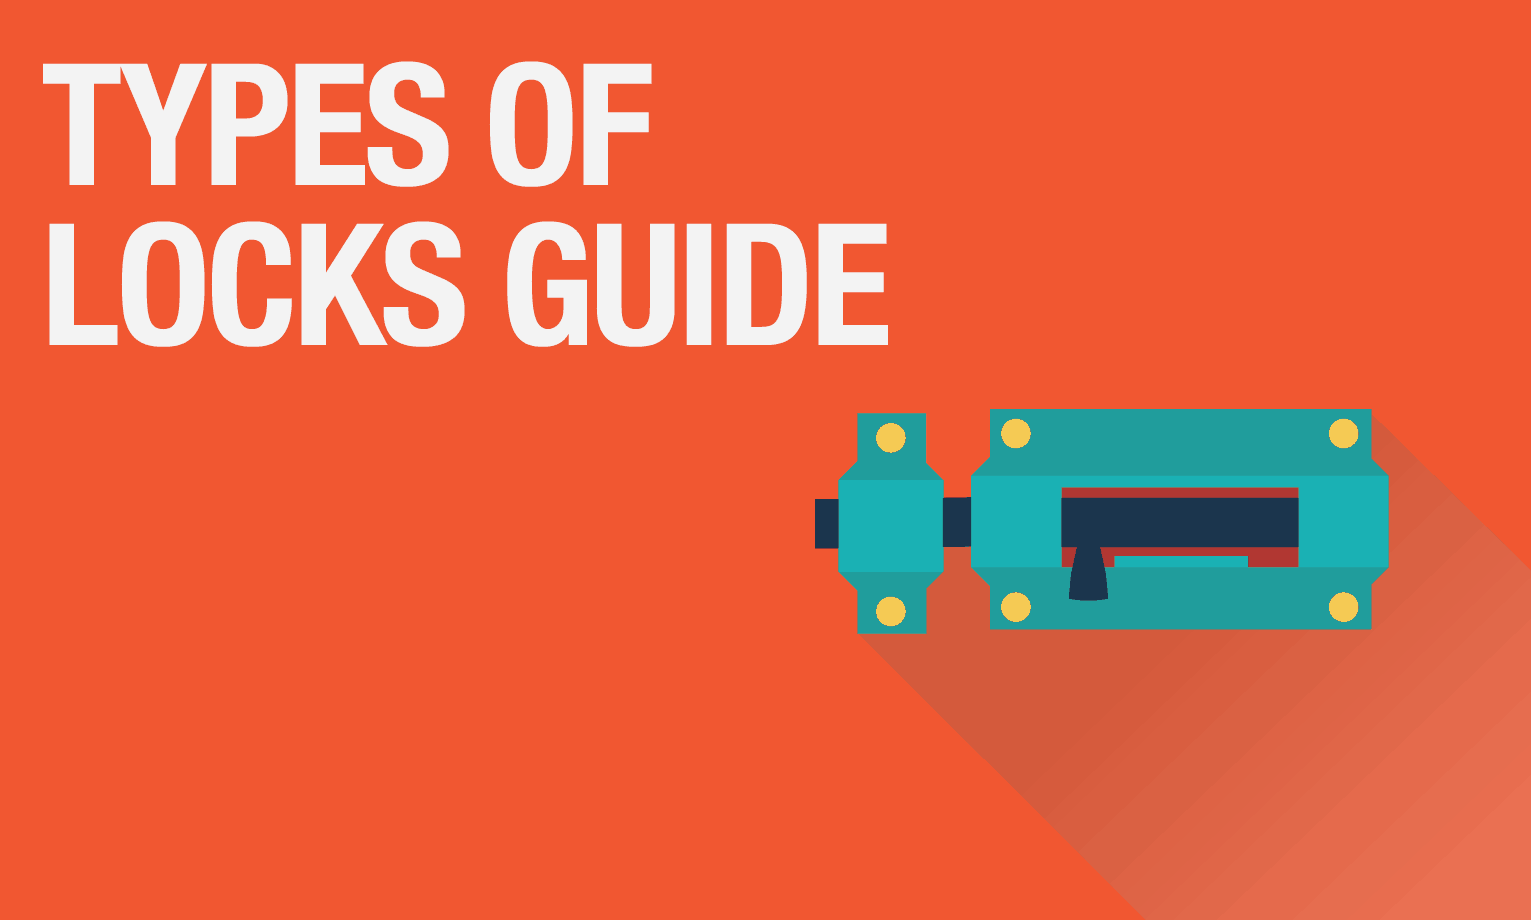 PICKER OF LOCKS - FEATURE IMAGE - TYPES OF LOCKS GUIDE